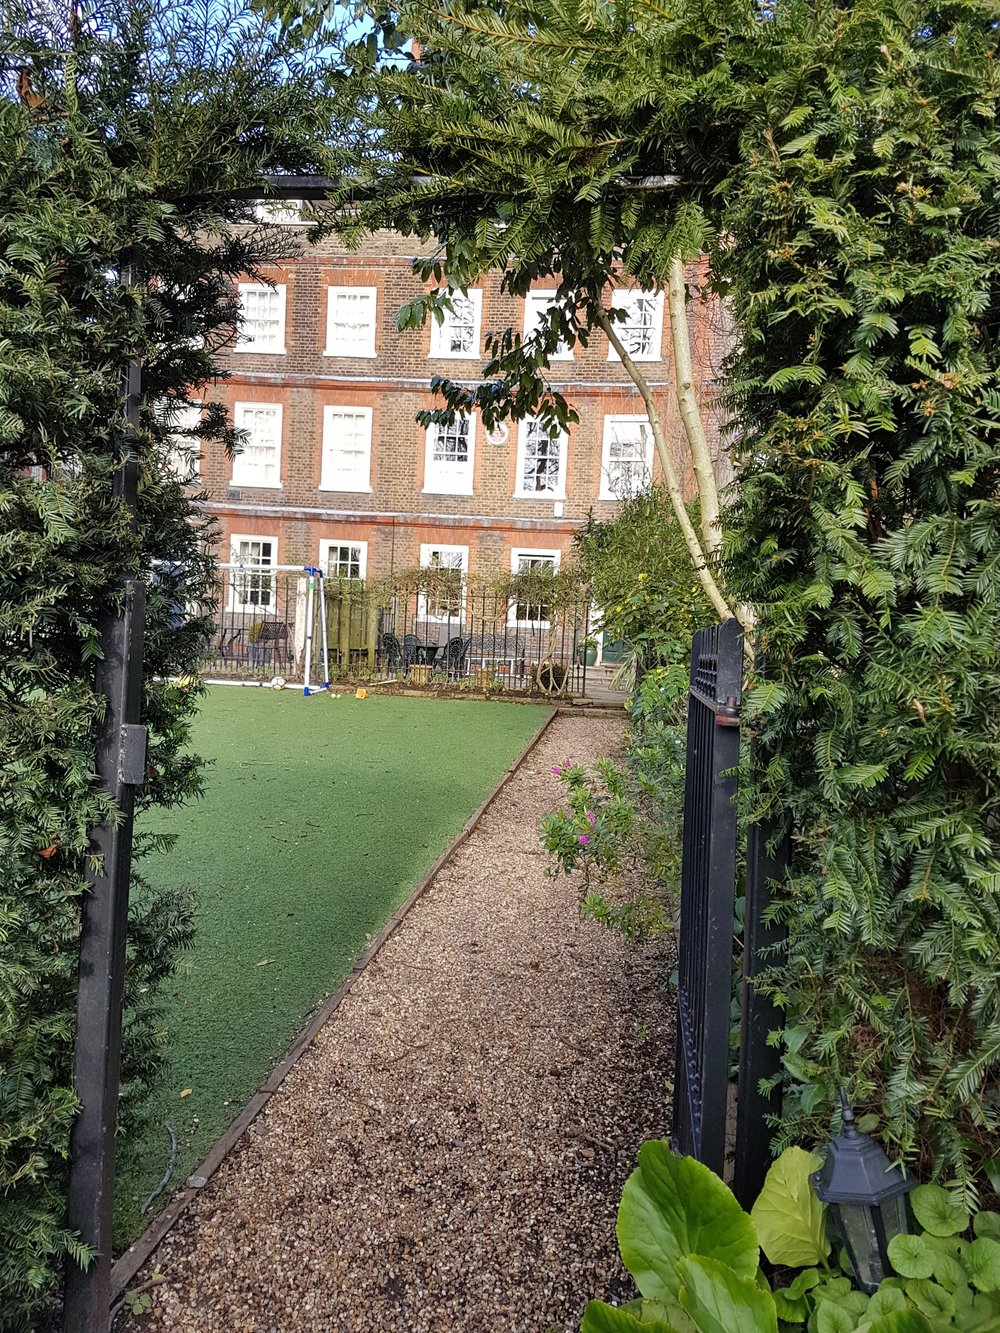 The only brown plaque on my route at Bolton House, Hampstead. I did feel like a bit of an intruder getting this shot